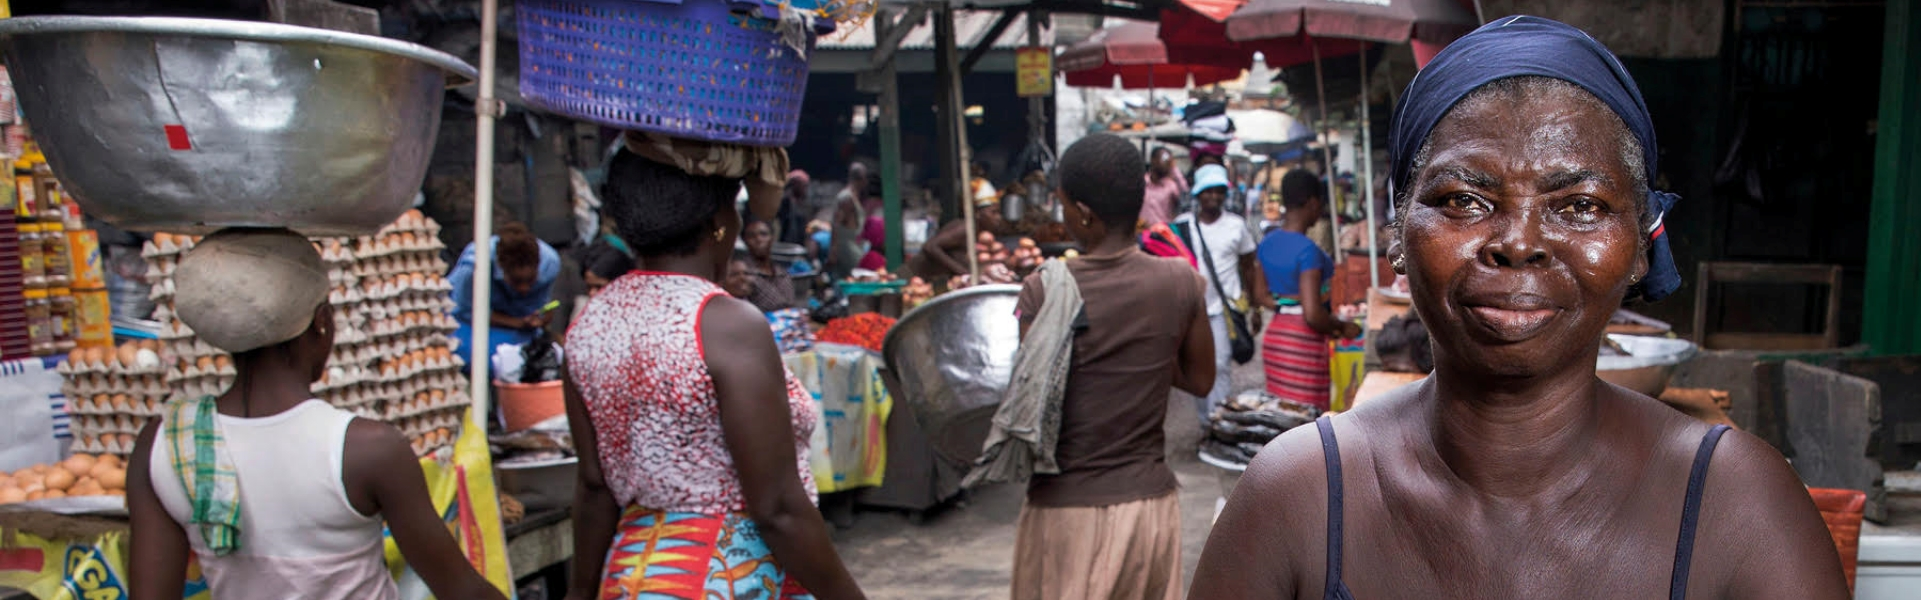 Street Vendors and Public Space e-book cover